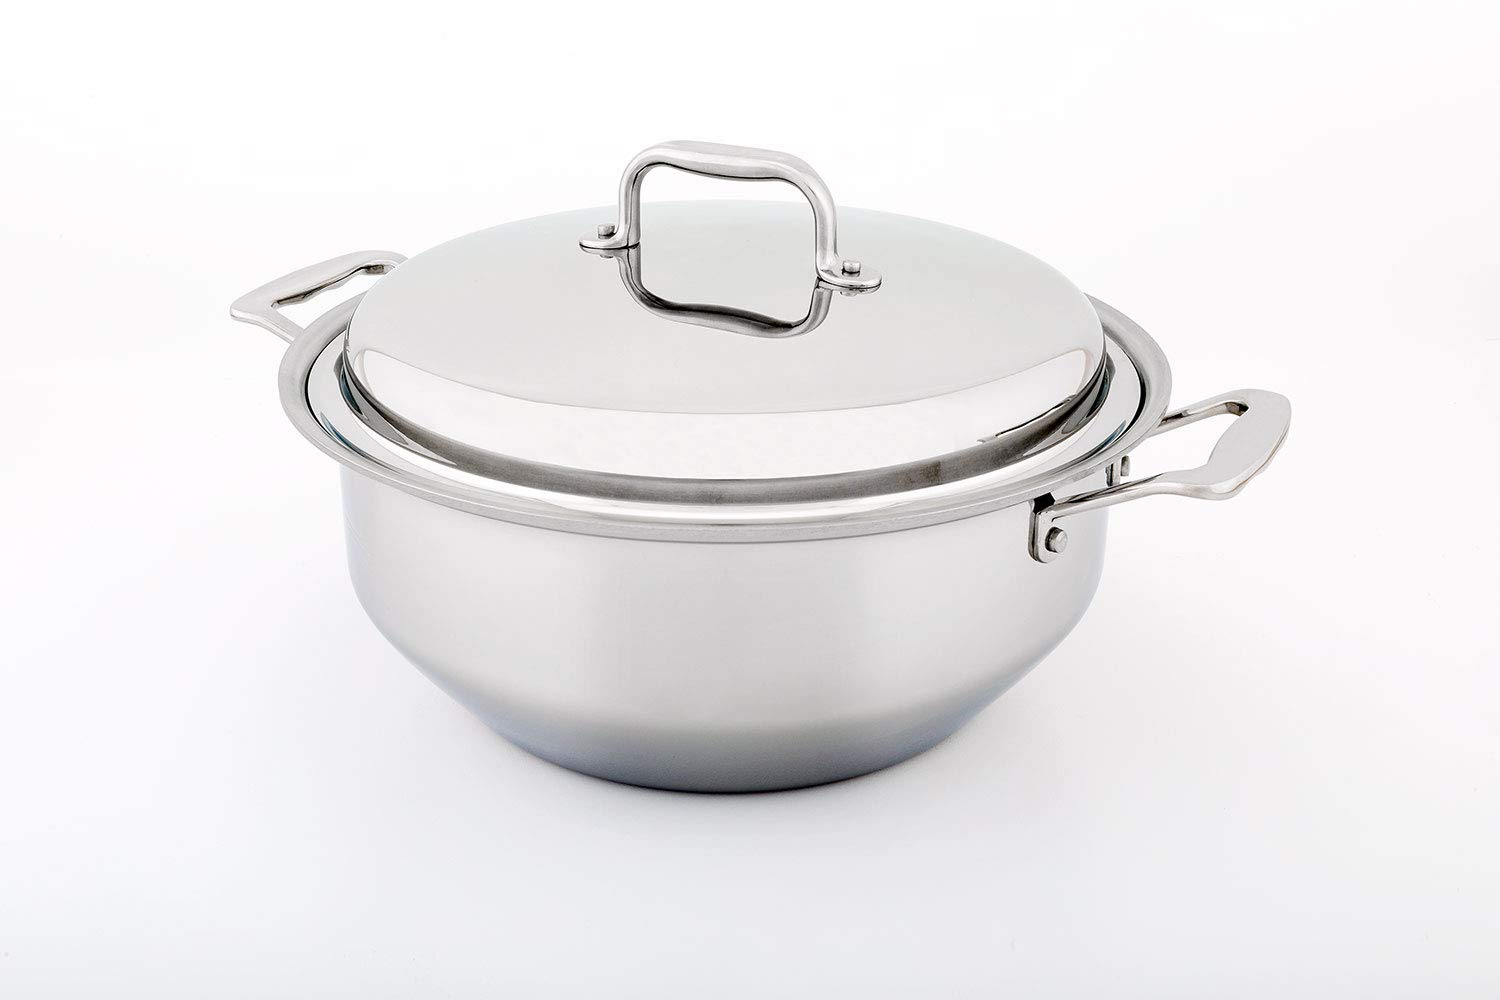 360 Stainless Steel Stock Pot with Lid, 6 Qt Gourmet Stockpot, Handcrafted in the USA, Induction Cookware, Waterless Cookware, Dishwasher Safe, Oven Safe, Stainless Steel Cookware (6 Quart Gourmet)